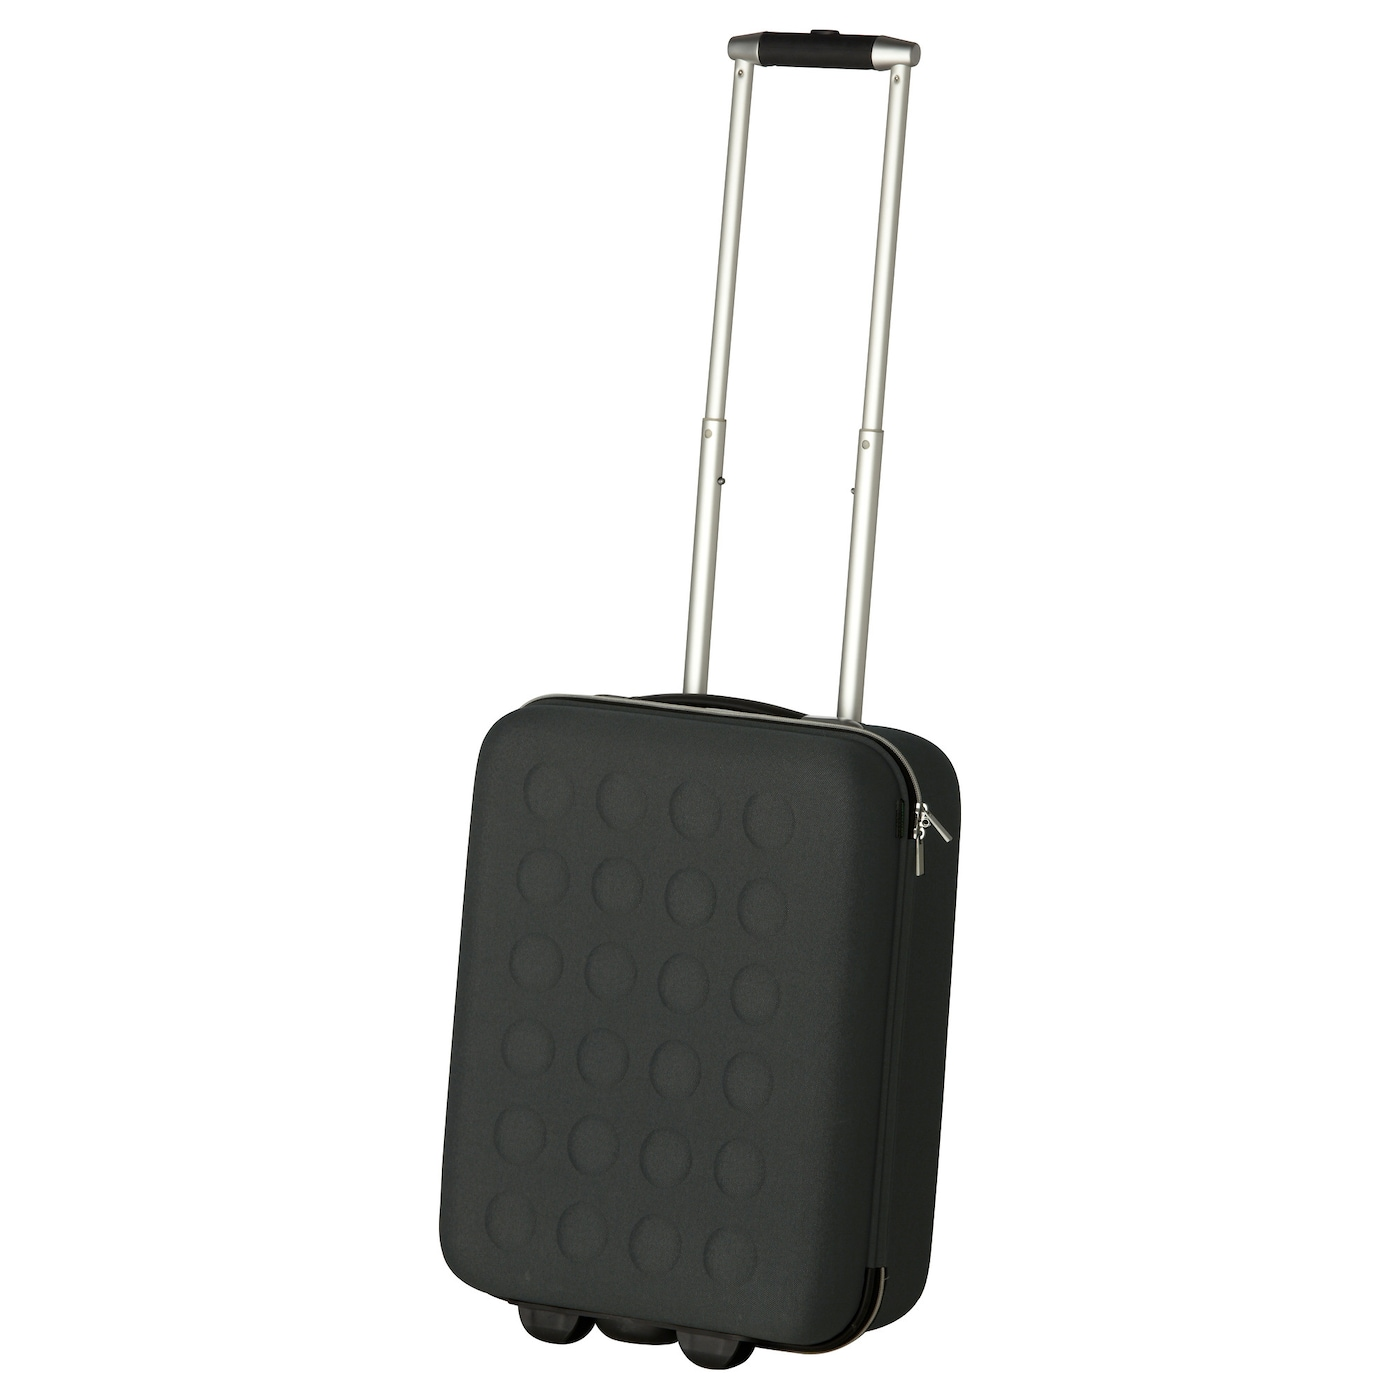 IKEA UPPTÄCKA cabin bag on wheels The cabin bag rolls easily because it has smooth-running wheels.